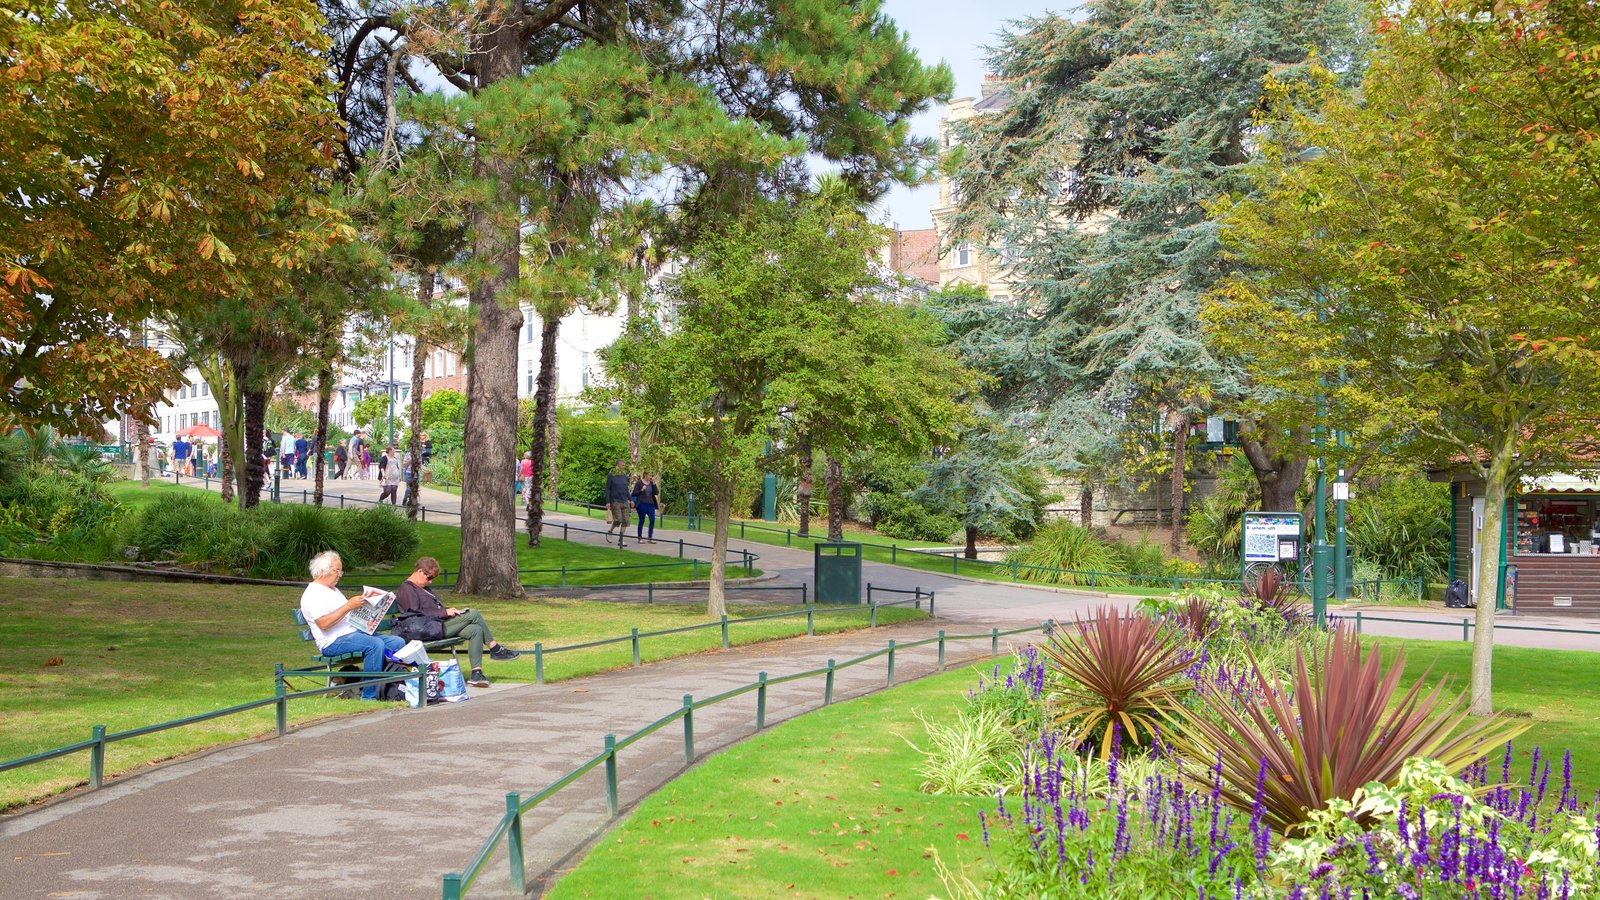 Bournemouth Lower Gardens Showing A Park As Well Couple